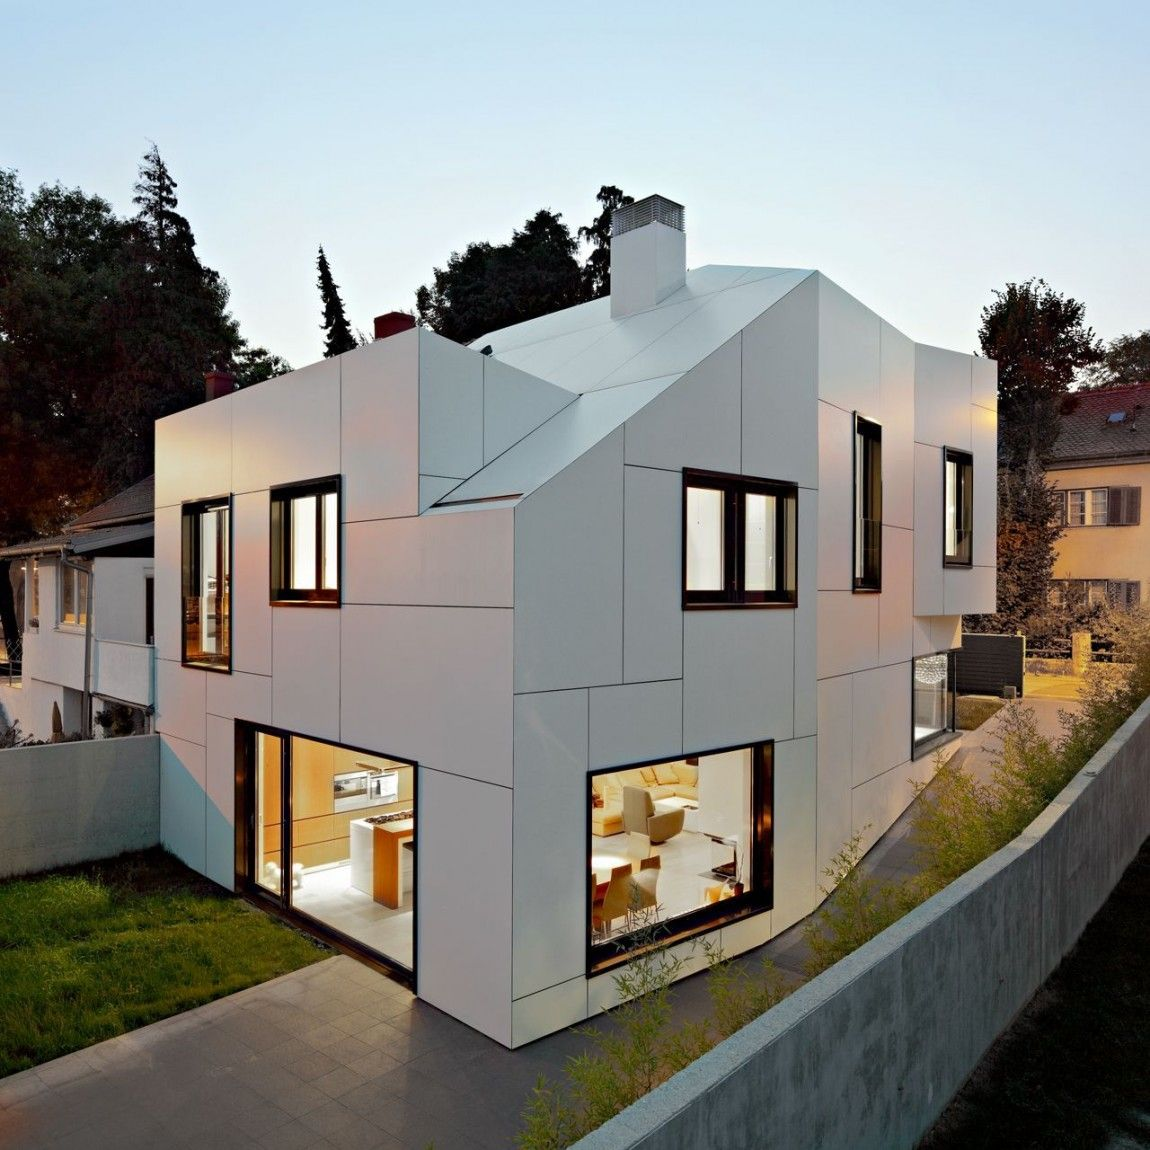 Neat House Modern Family House Boasting An Irregular Geometric Design By  DVA Arhitekta